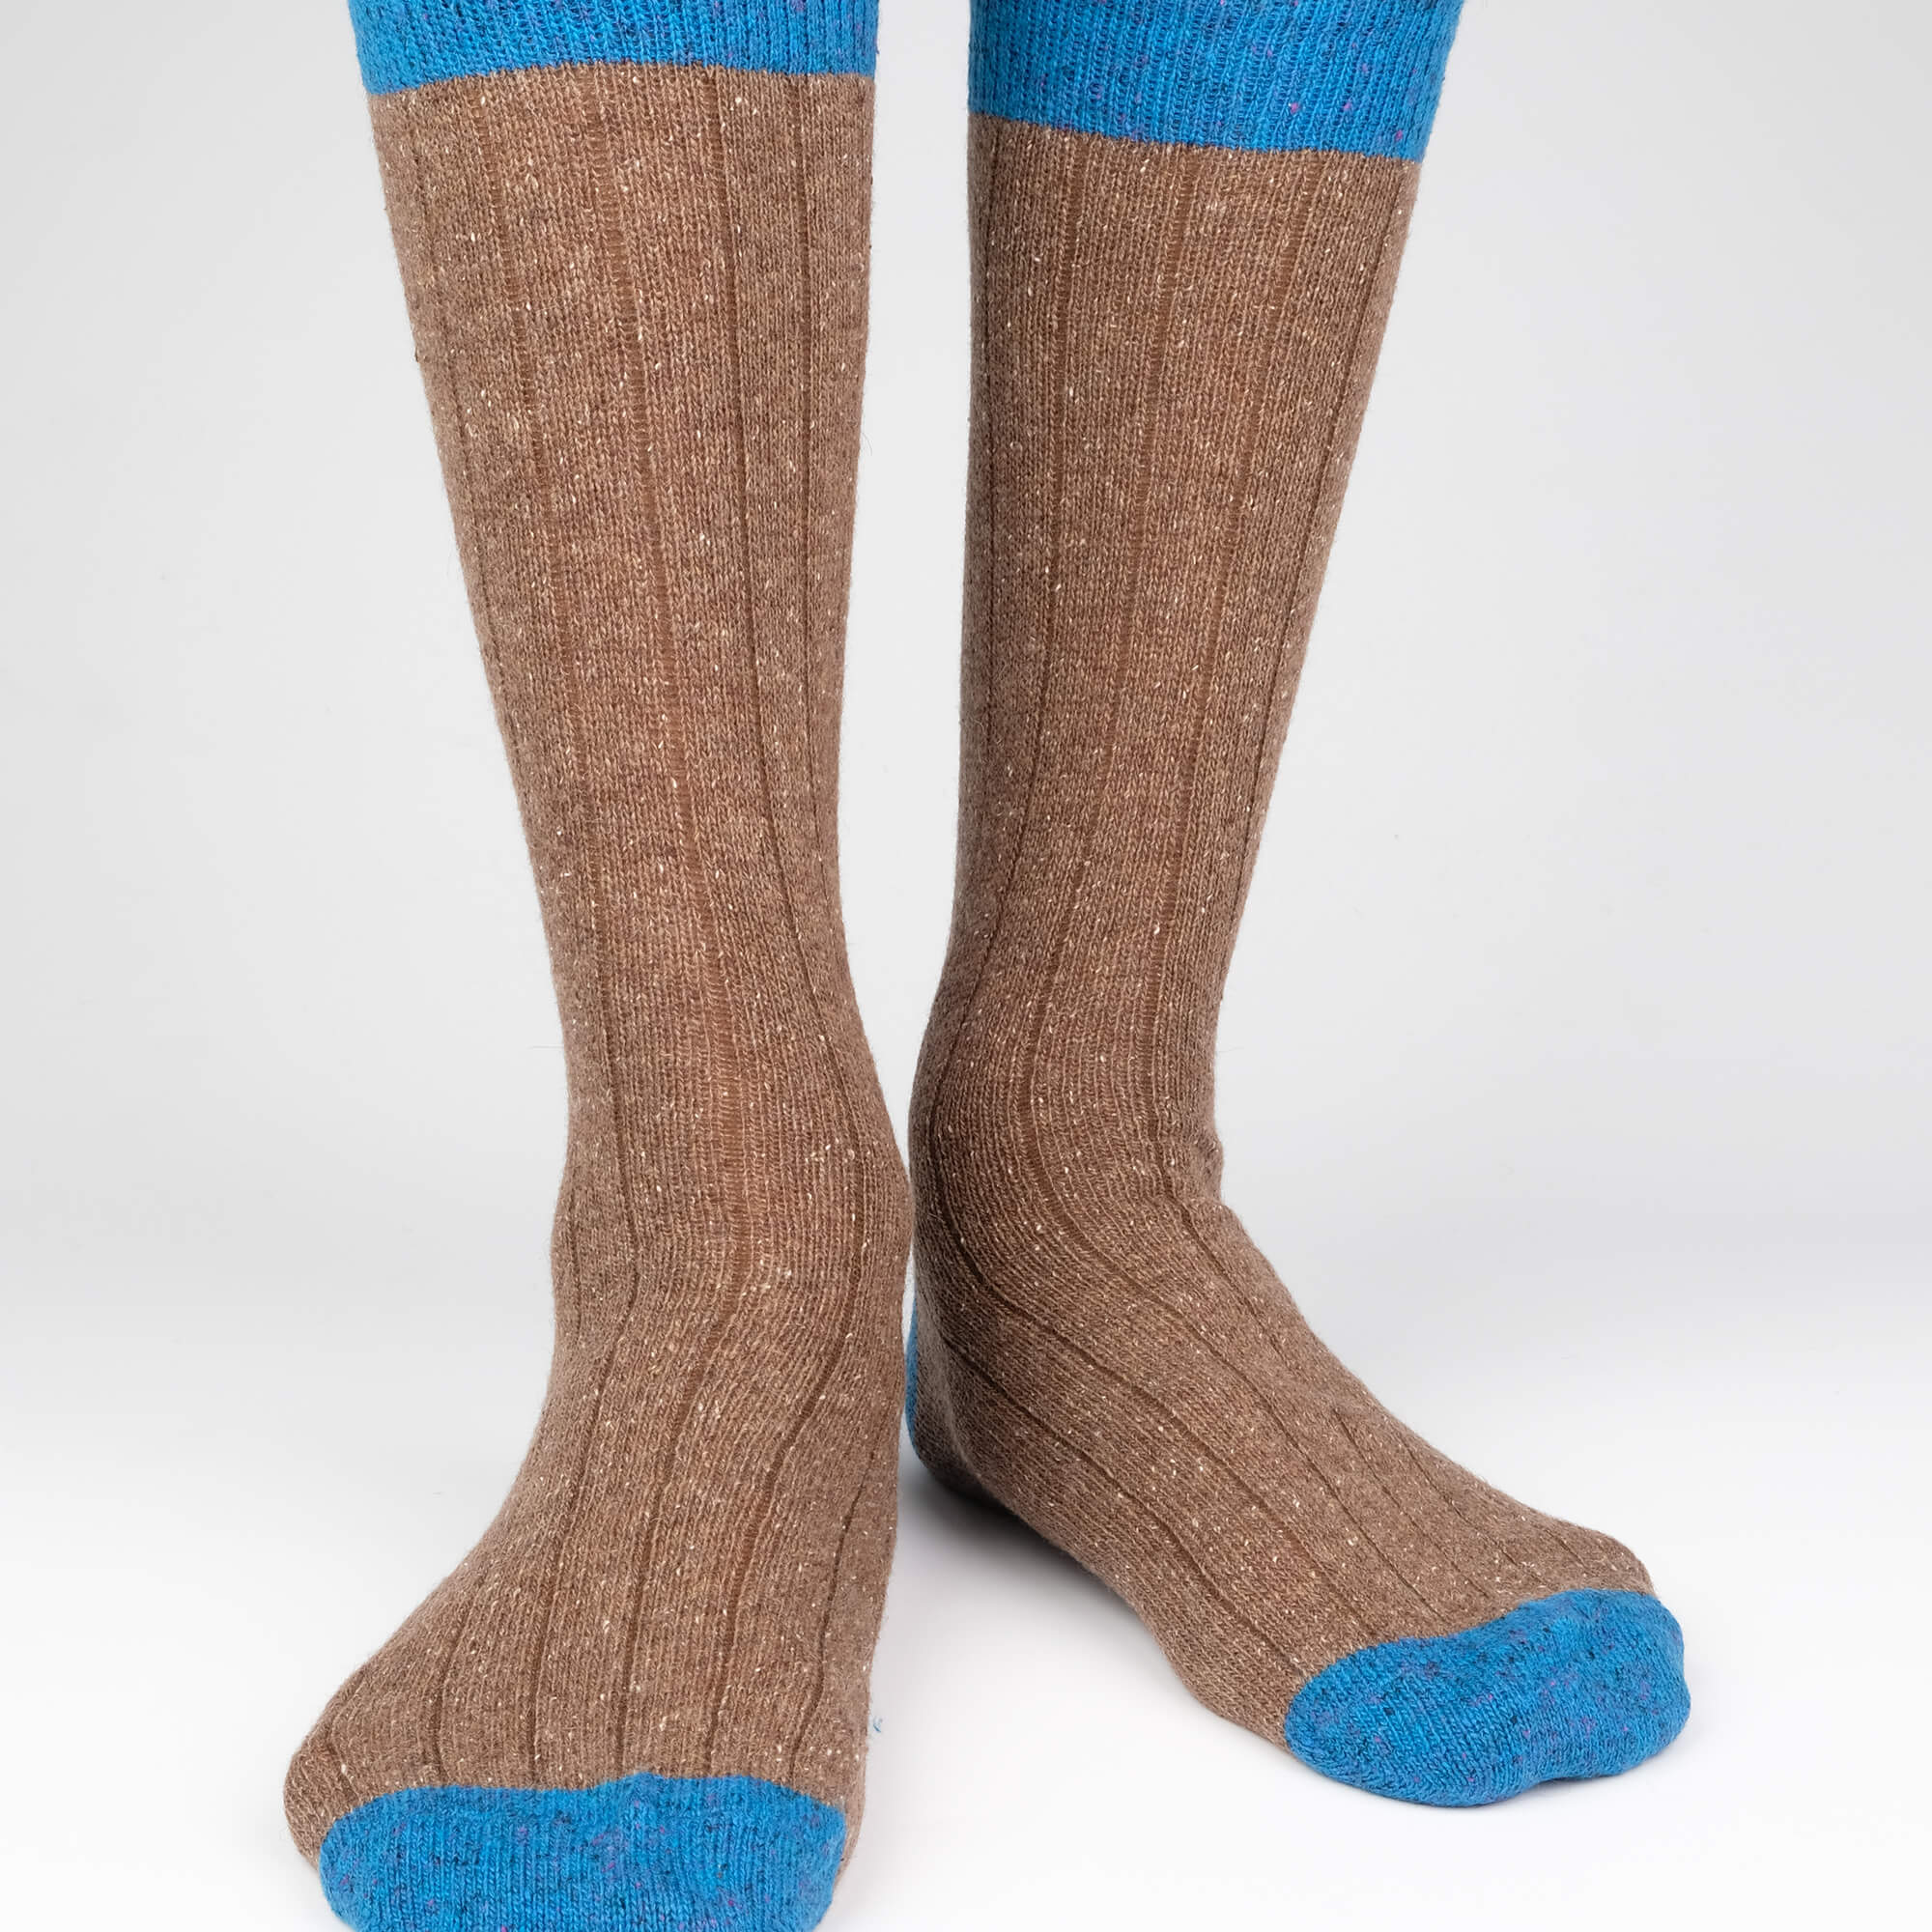 Tweed Rib - Brown - Mens Socks | Etiquette Clothiers Global Official